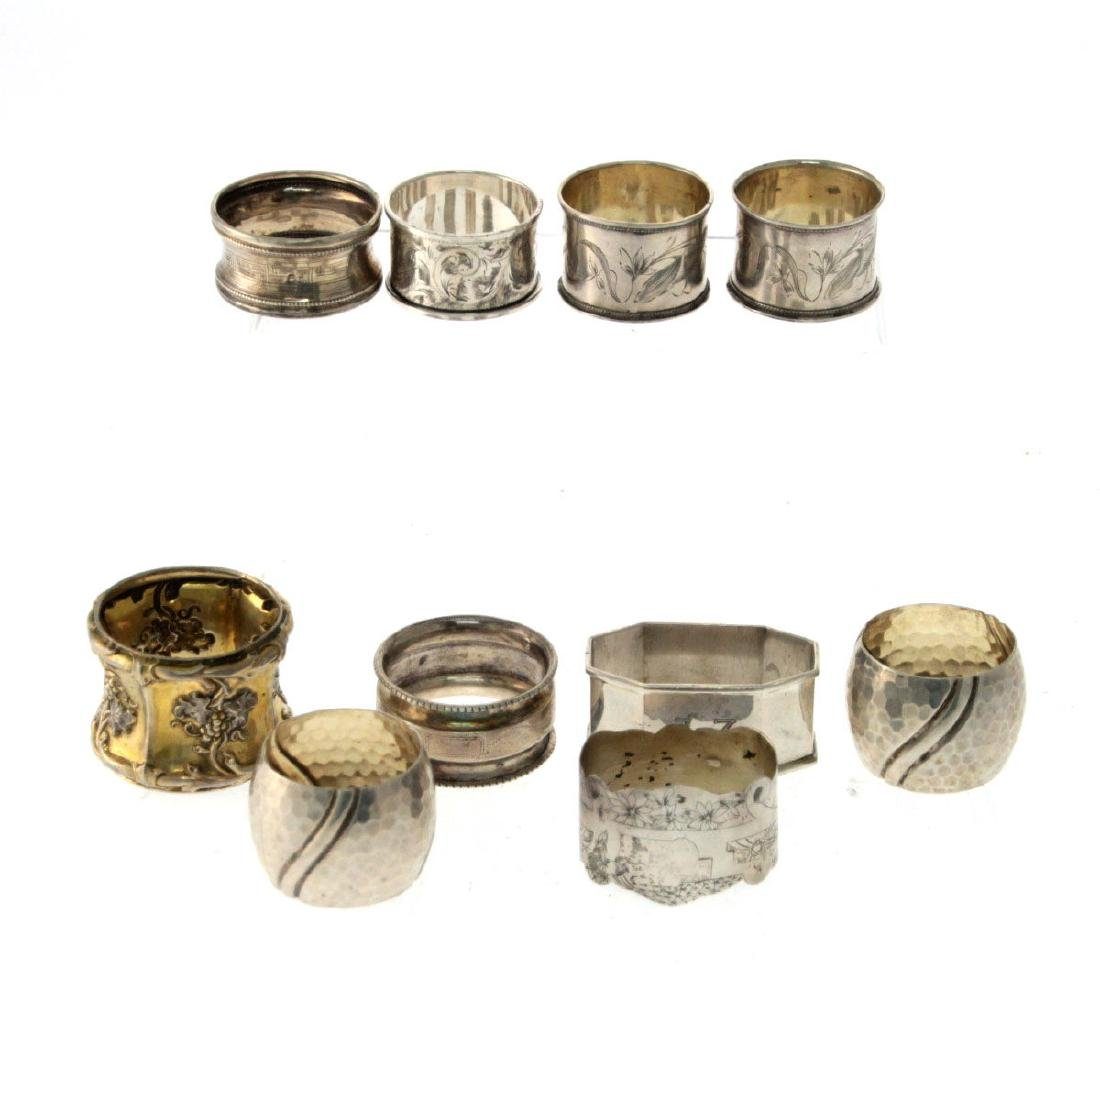 Collection of 10 Silver Napkin Rings.